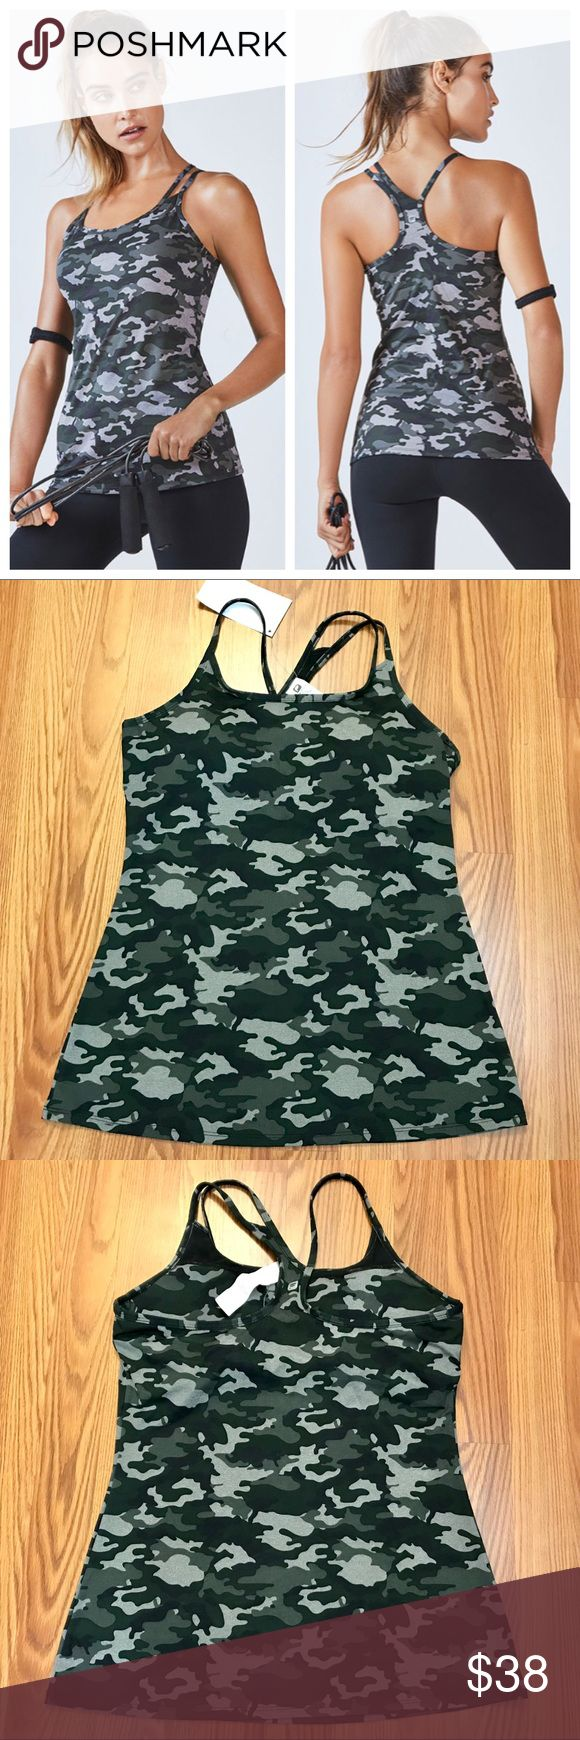 Fabletics Large Omemee Camo Tank NWT Brand new super cute camo tank w/ double straps on one side and nice built in bra w/ removable pads. Size large. From a smoke and pet free home. Fabletics Tops Tank Tops